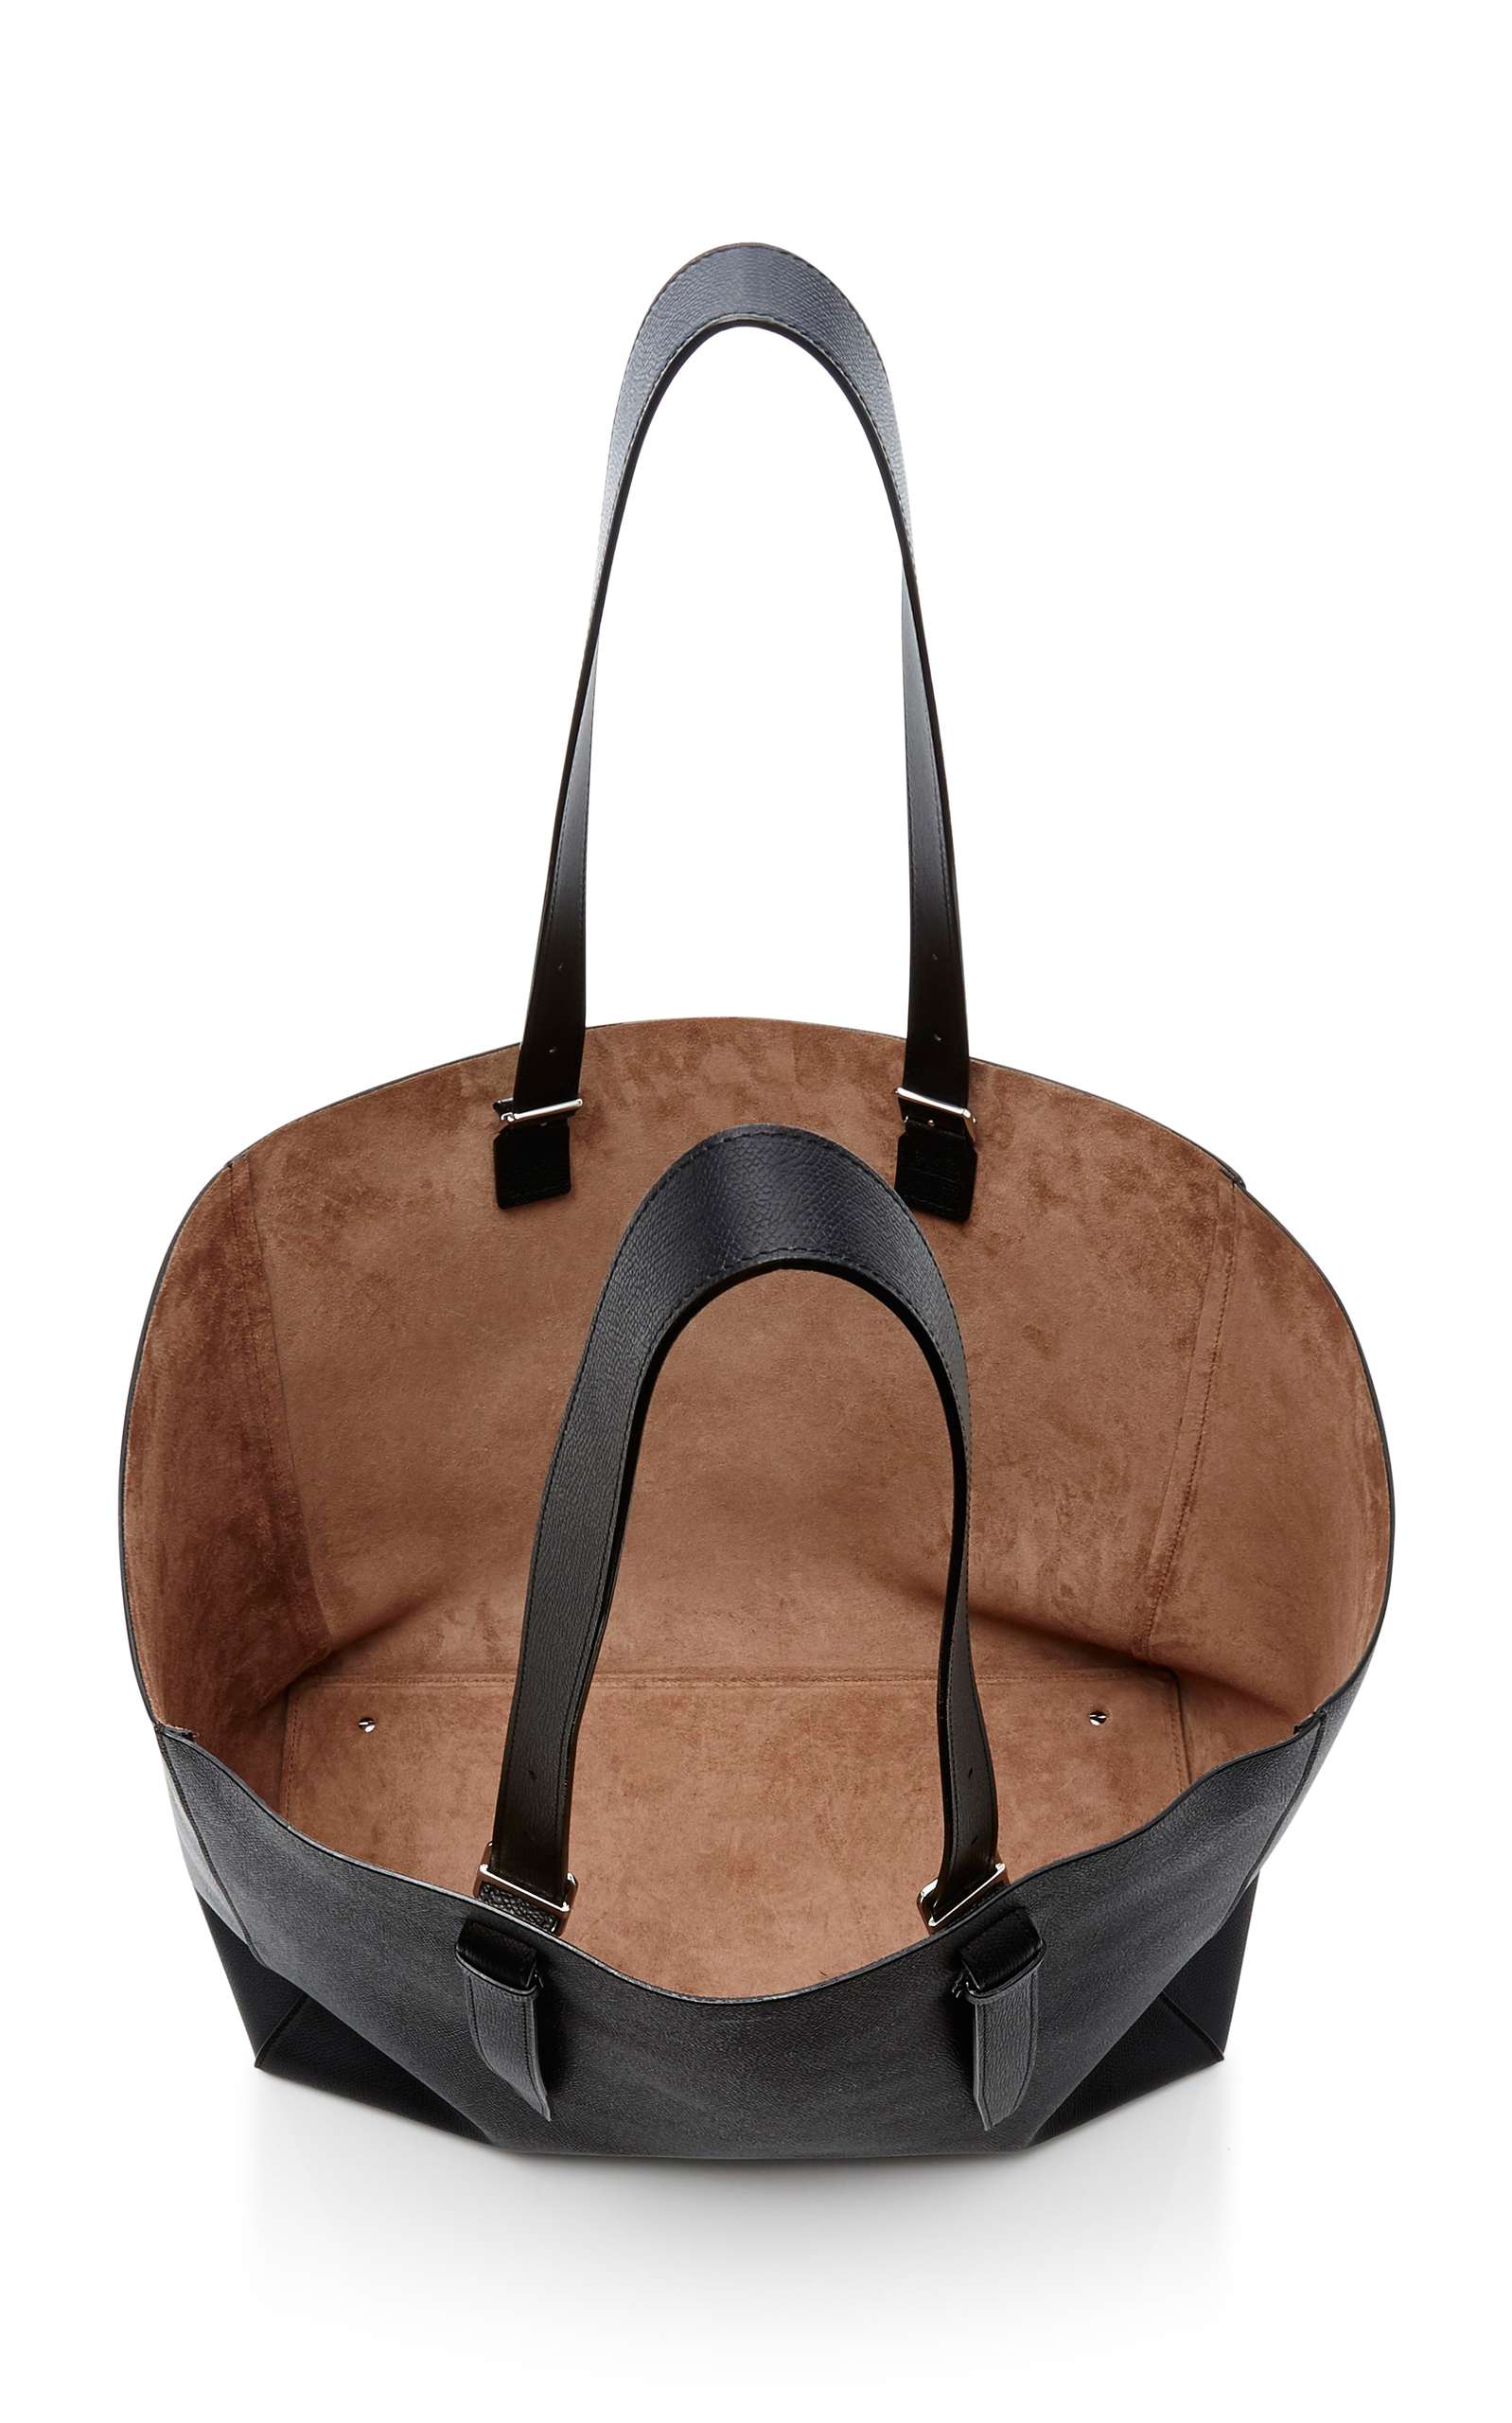 Soft XL Leather Tote Valextra